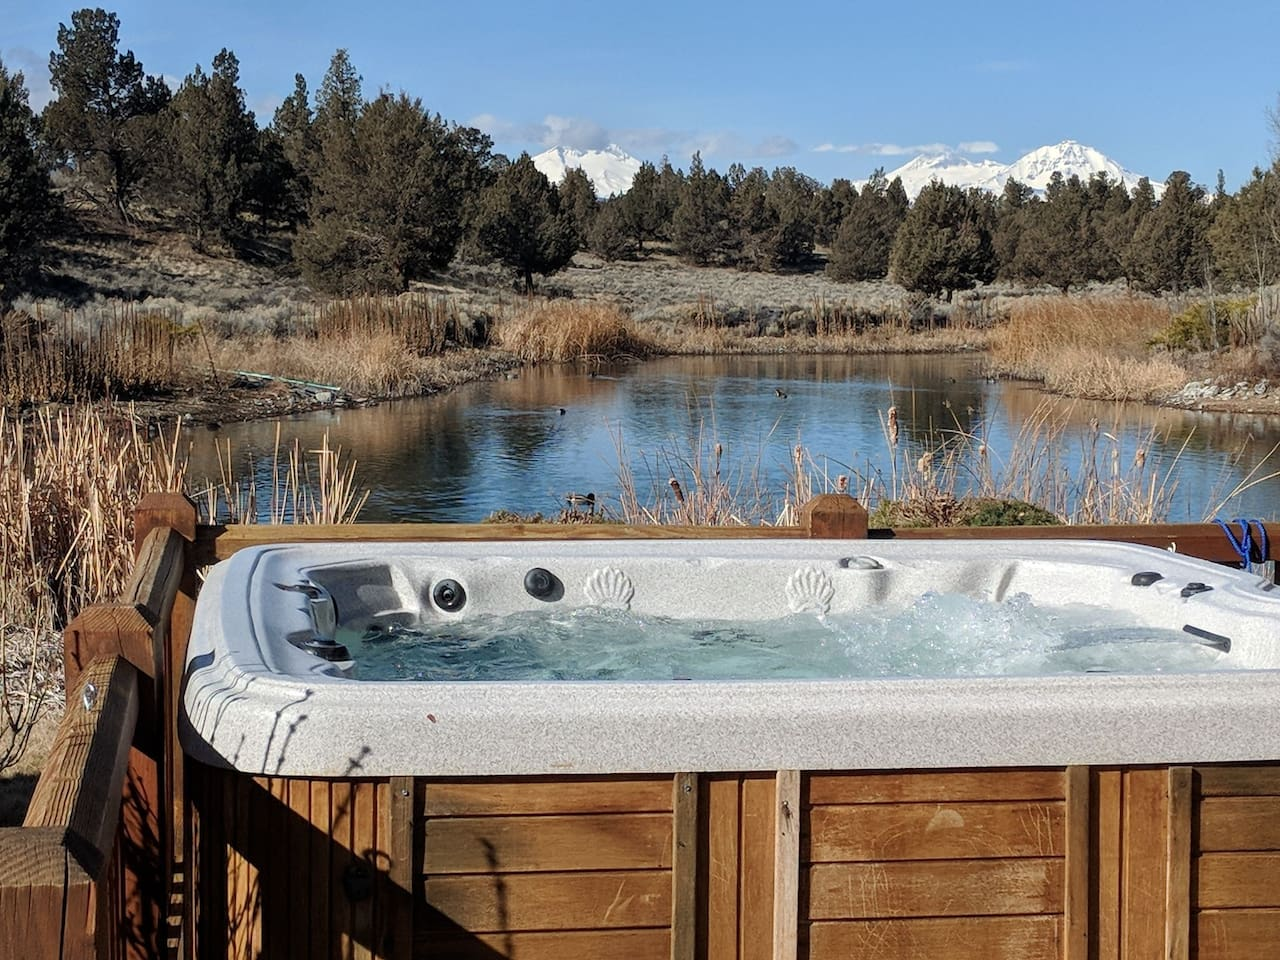 Whether returning from Smith Rock or a day on the mountain, or hiking the local area, the deep hot tub is wonderful.  On a clear night, and most of them are, the stars are spectacular!